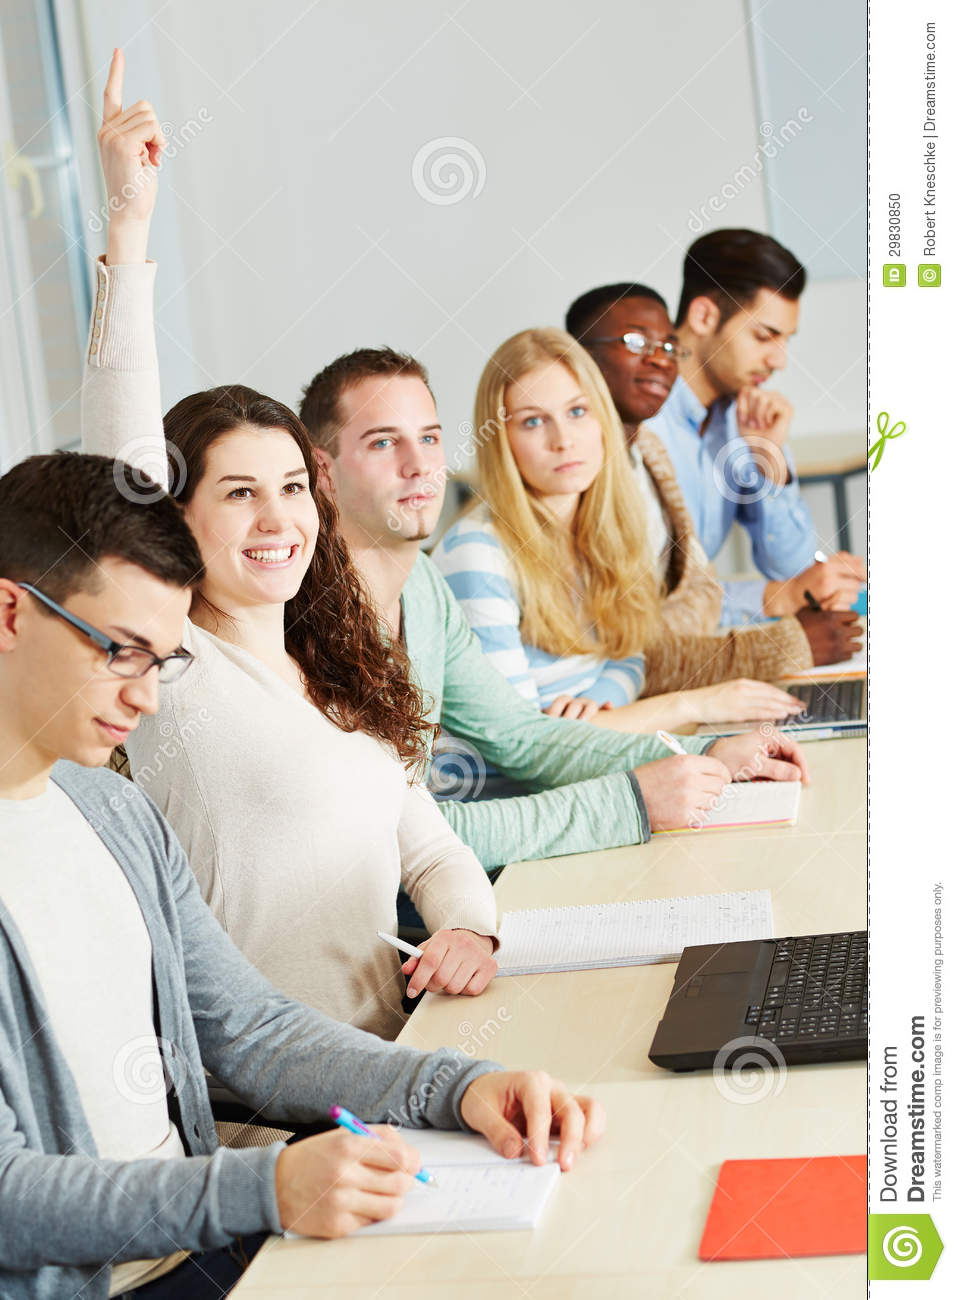 Student Raising Hand In University Stock Photo - Image: 29830850